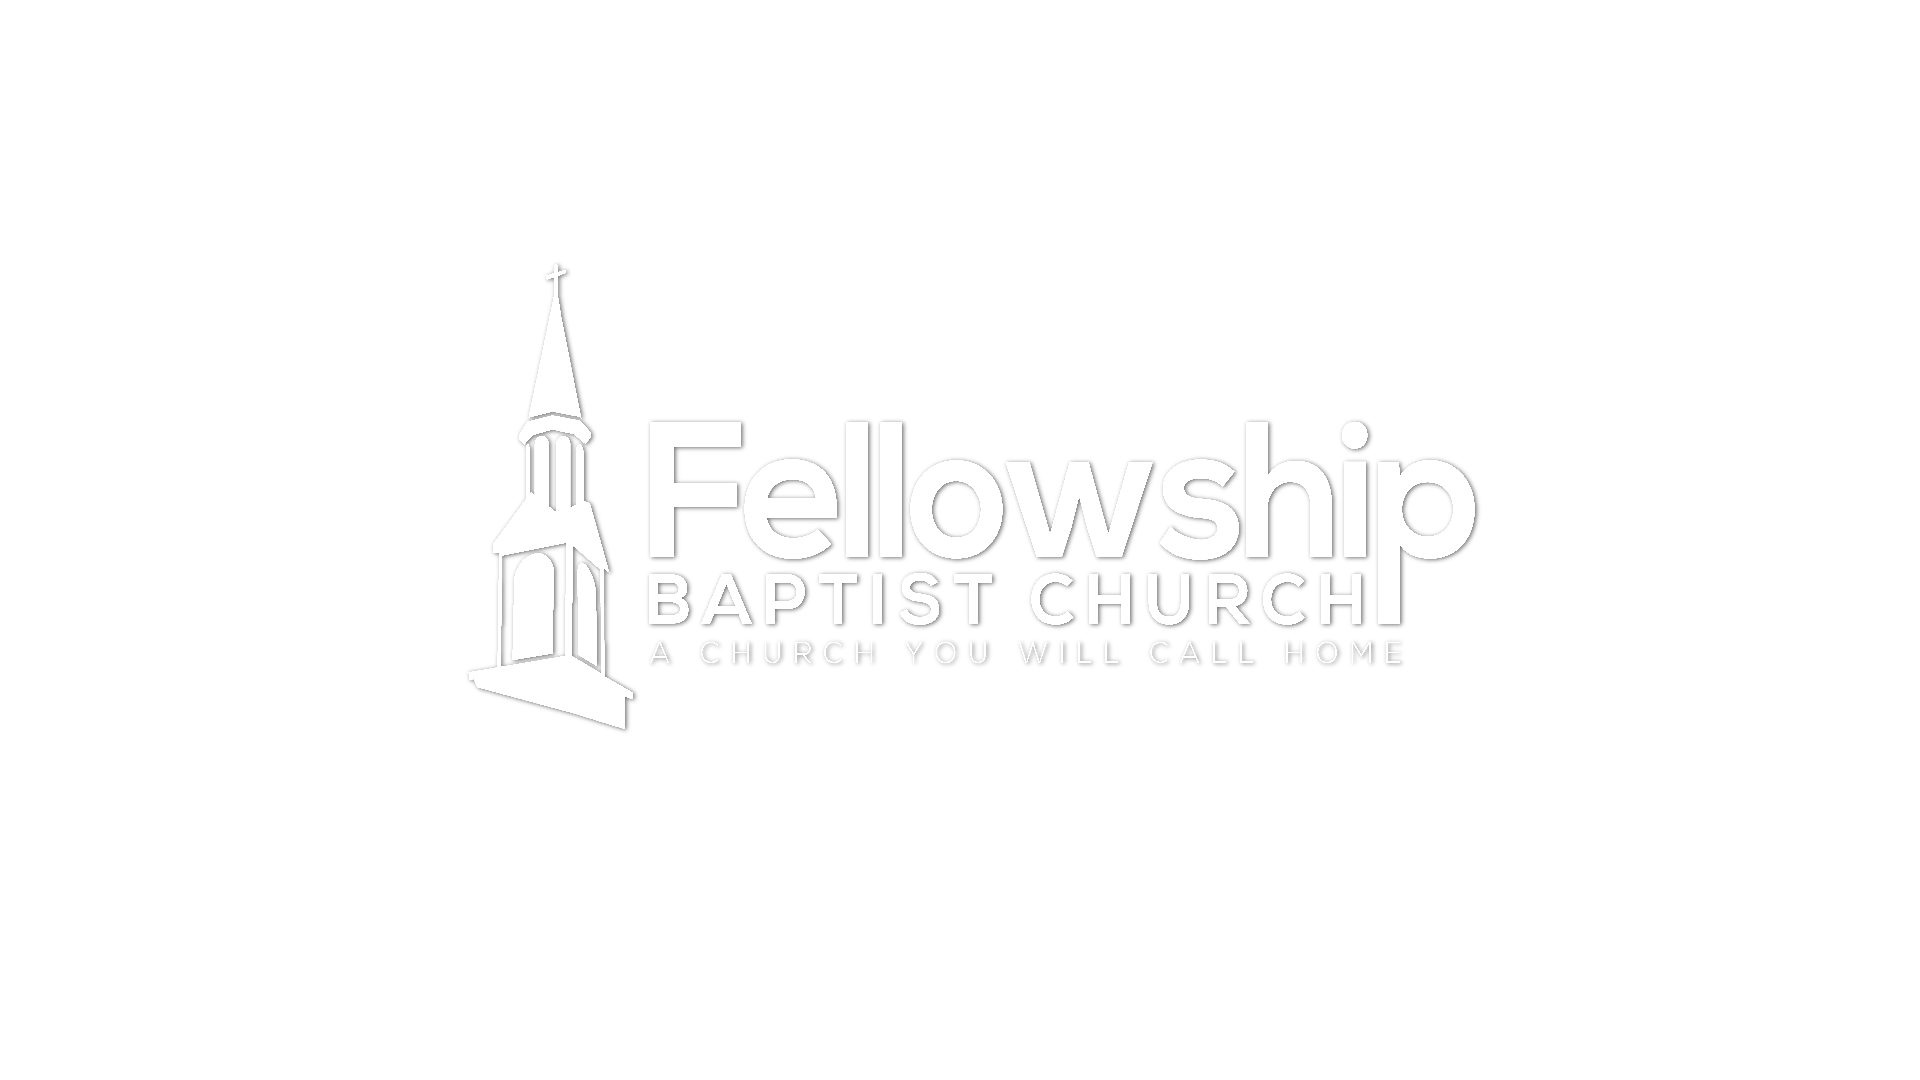 Worship Service - The 600 PM Worship Service of Fellowship Baptist Church.